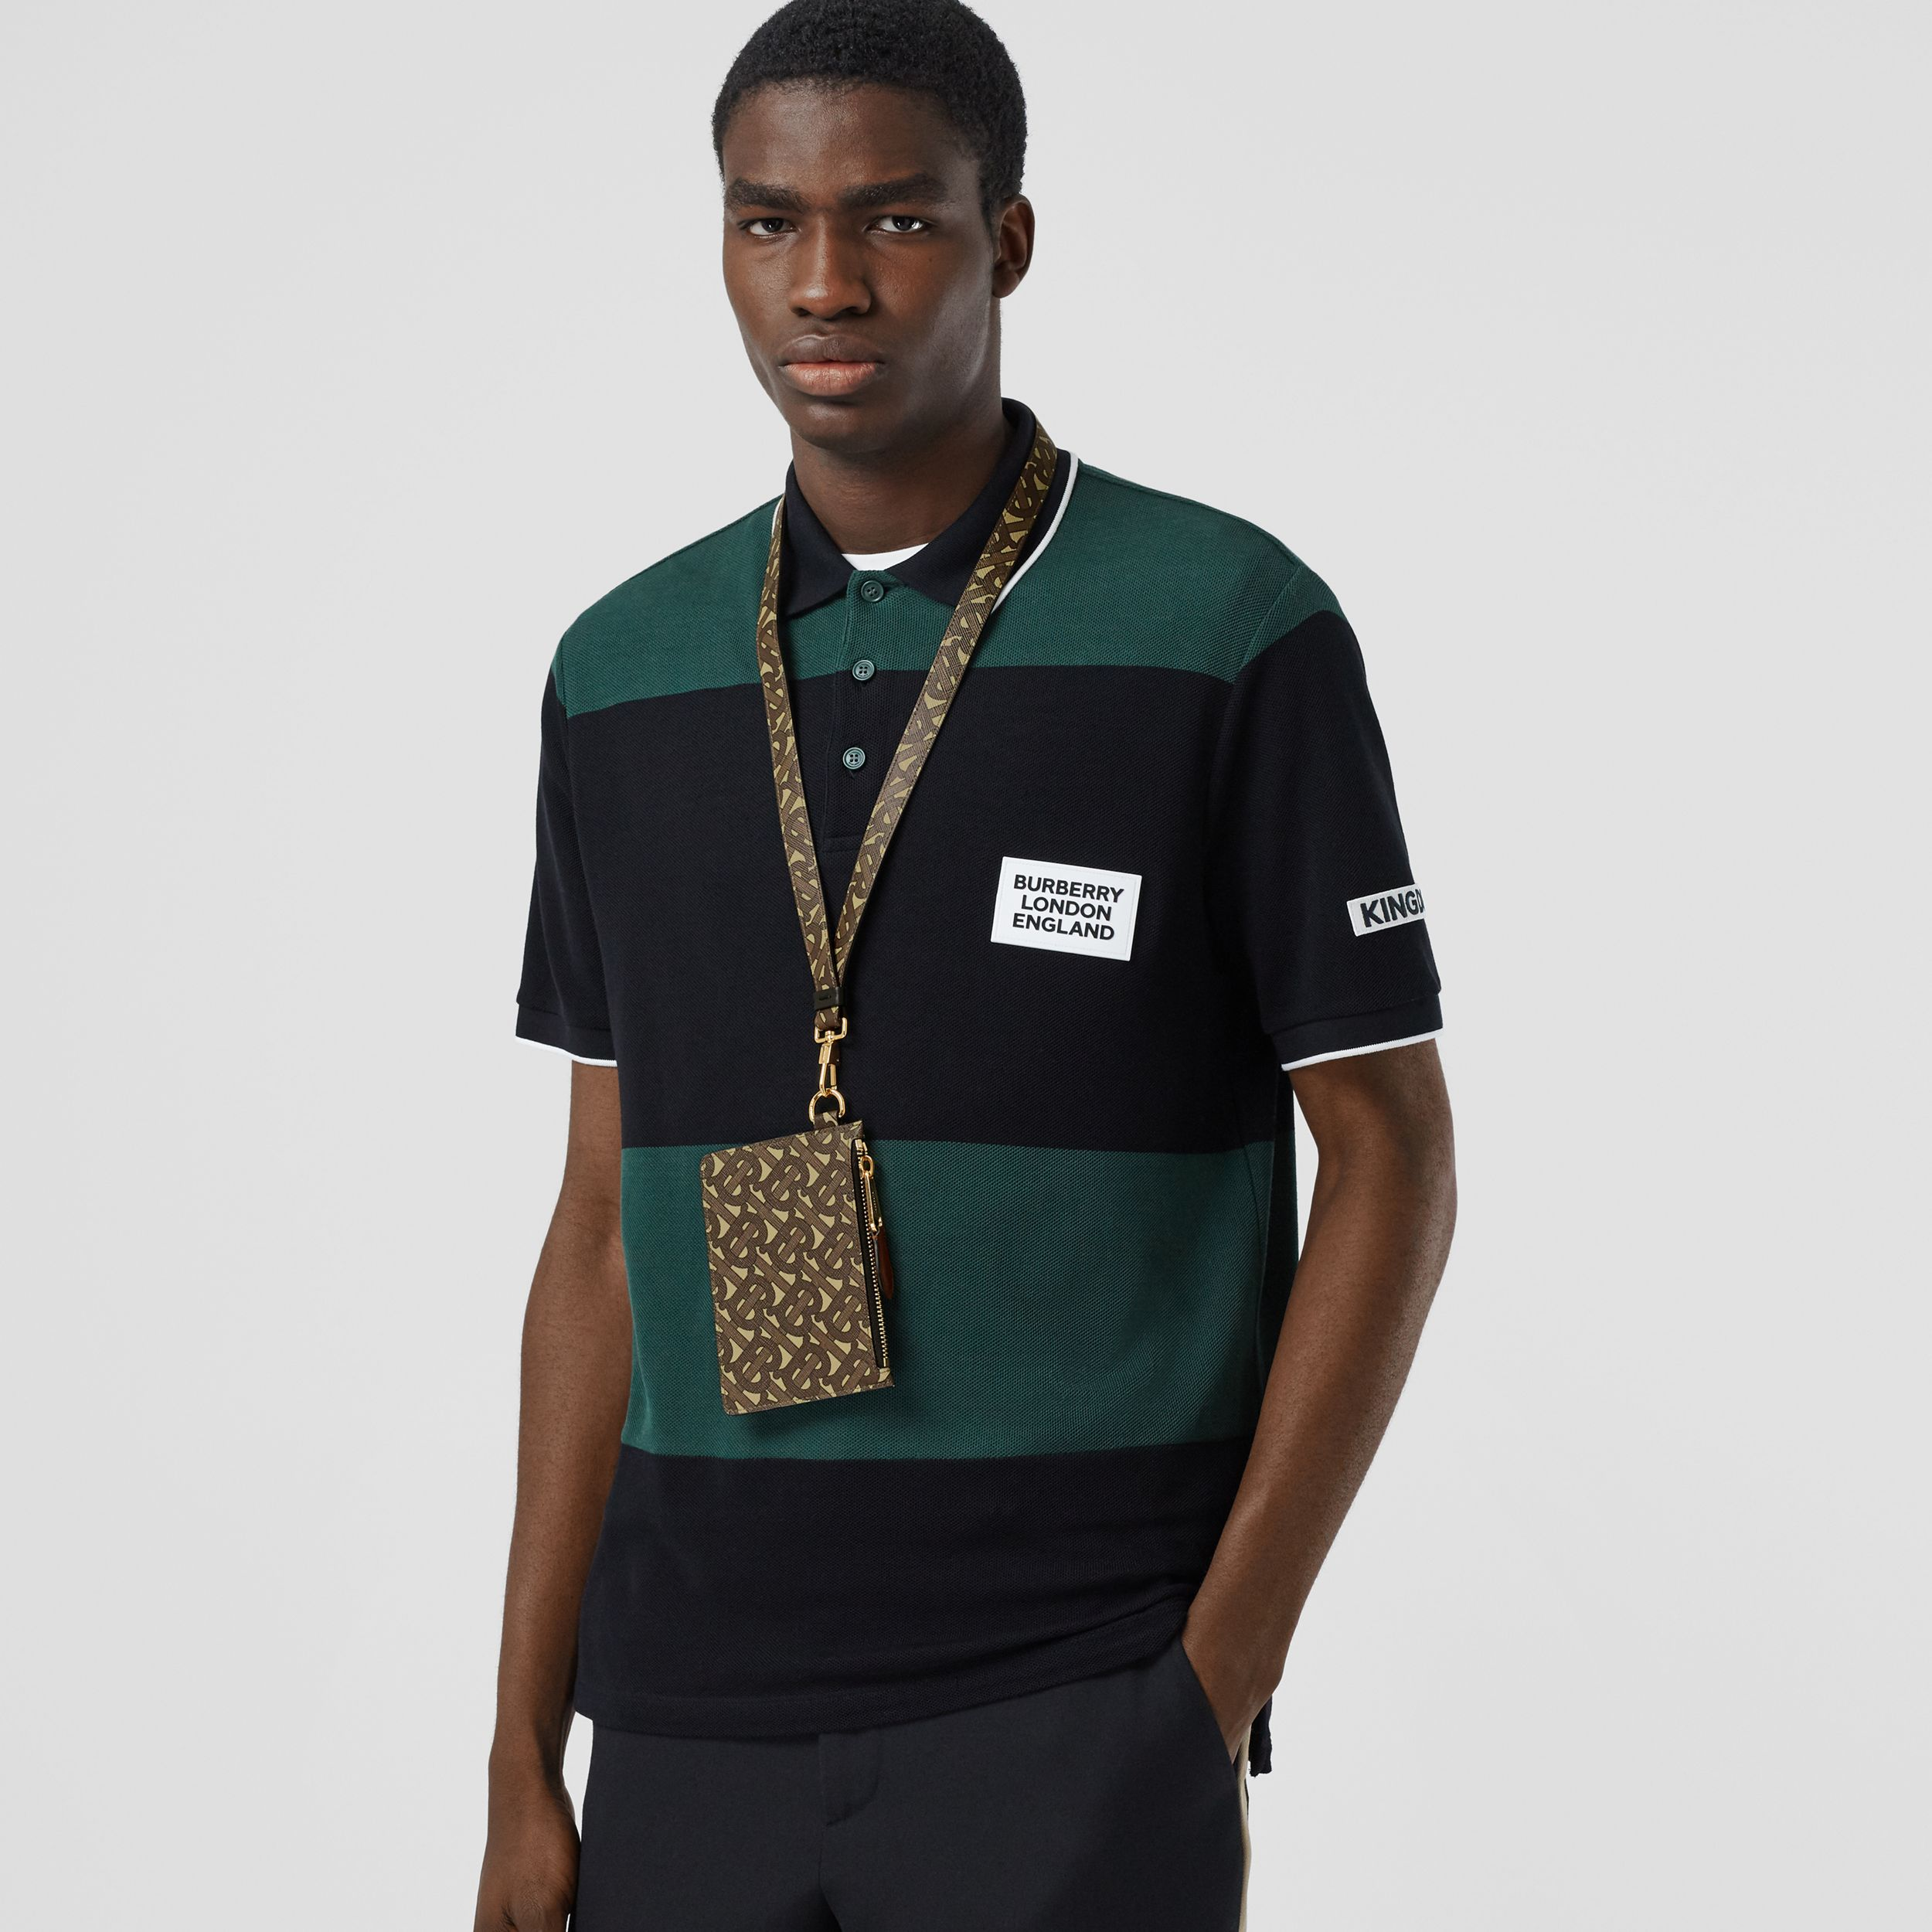 Monogram Print E-canvas and Leather Lanyard in Bridle Brown - Men | Burberry Hong Kong S.A.R. - 3